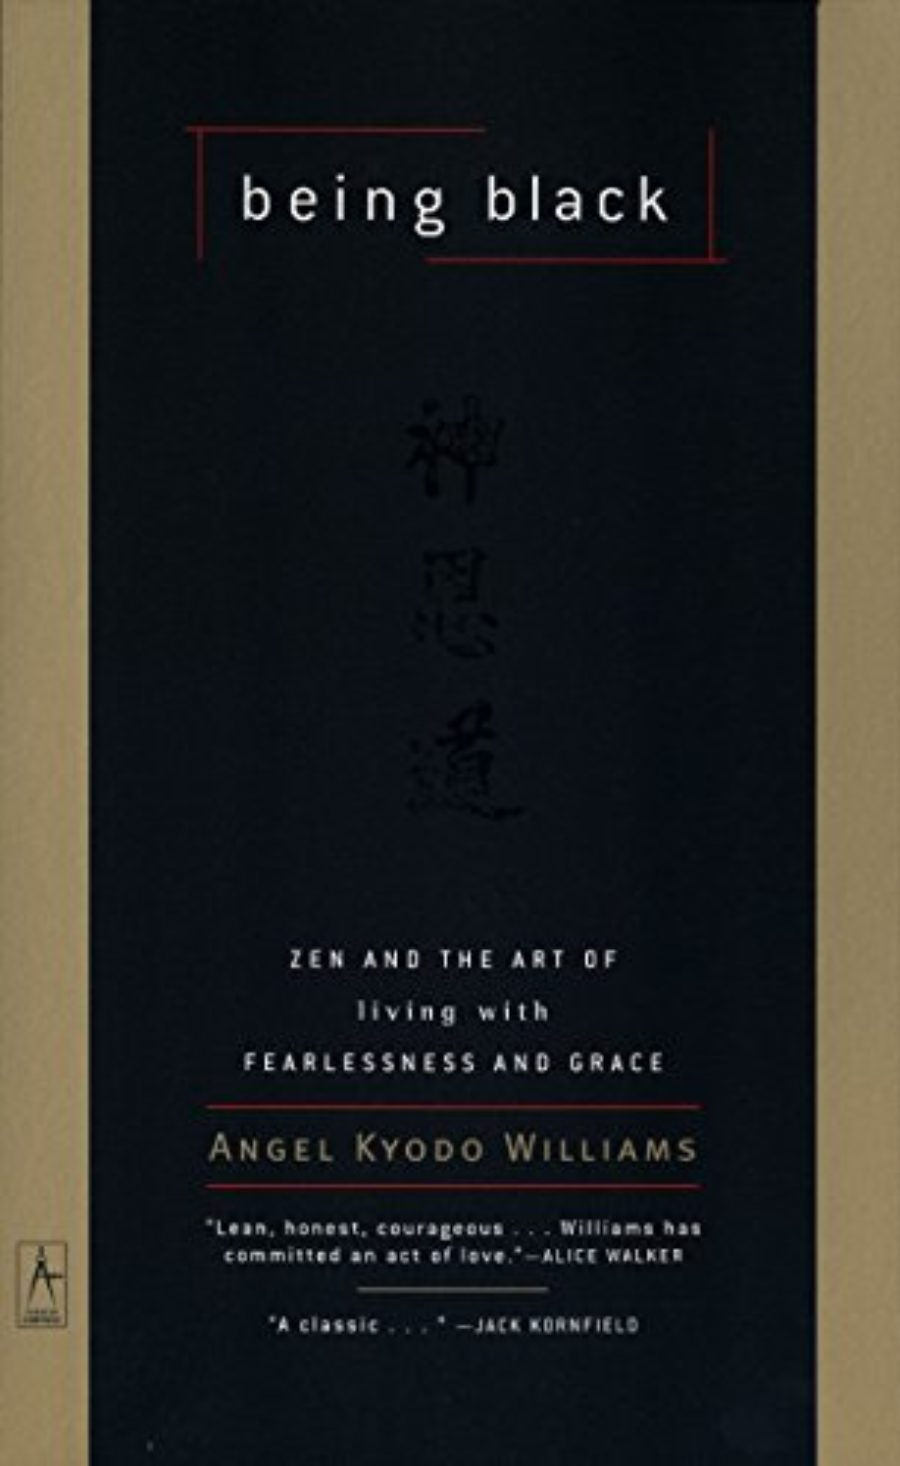 Cover of Being Black: Zen and the Art of Living with Fearlessness and Grace (Compass)